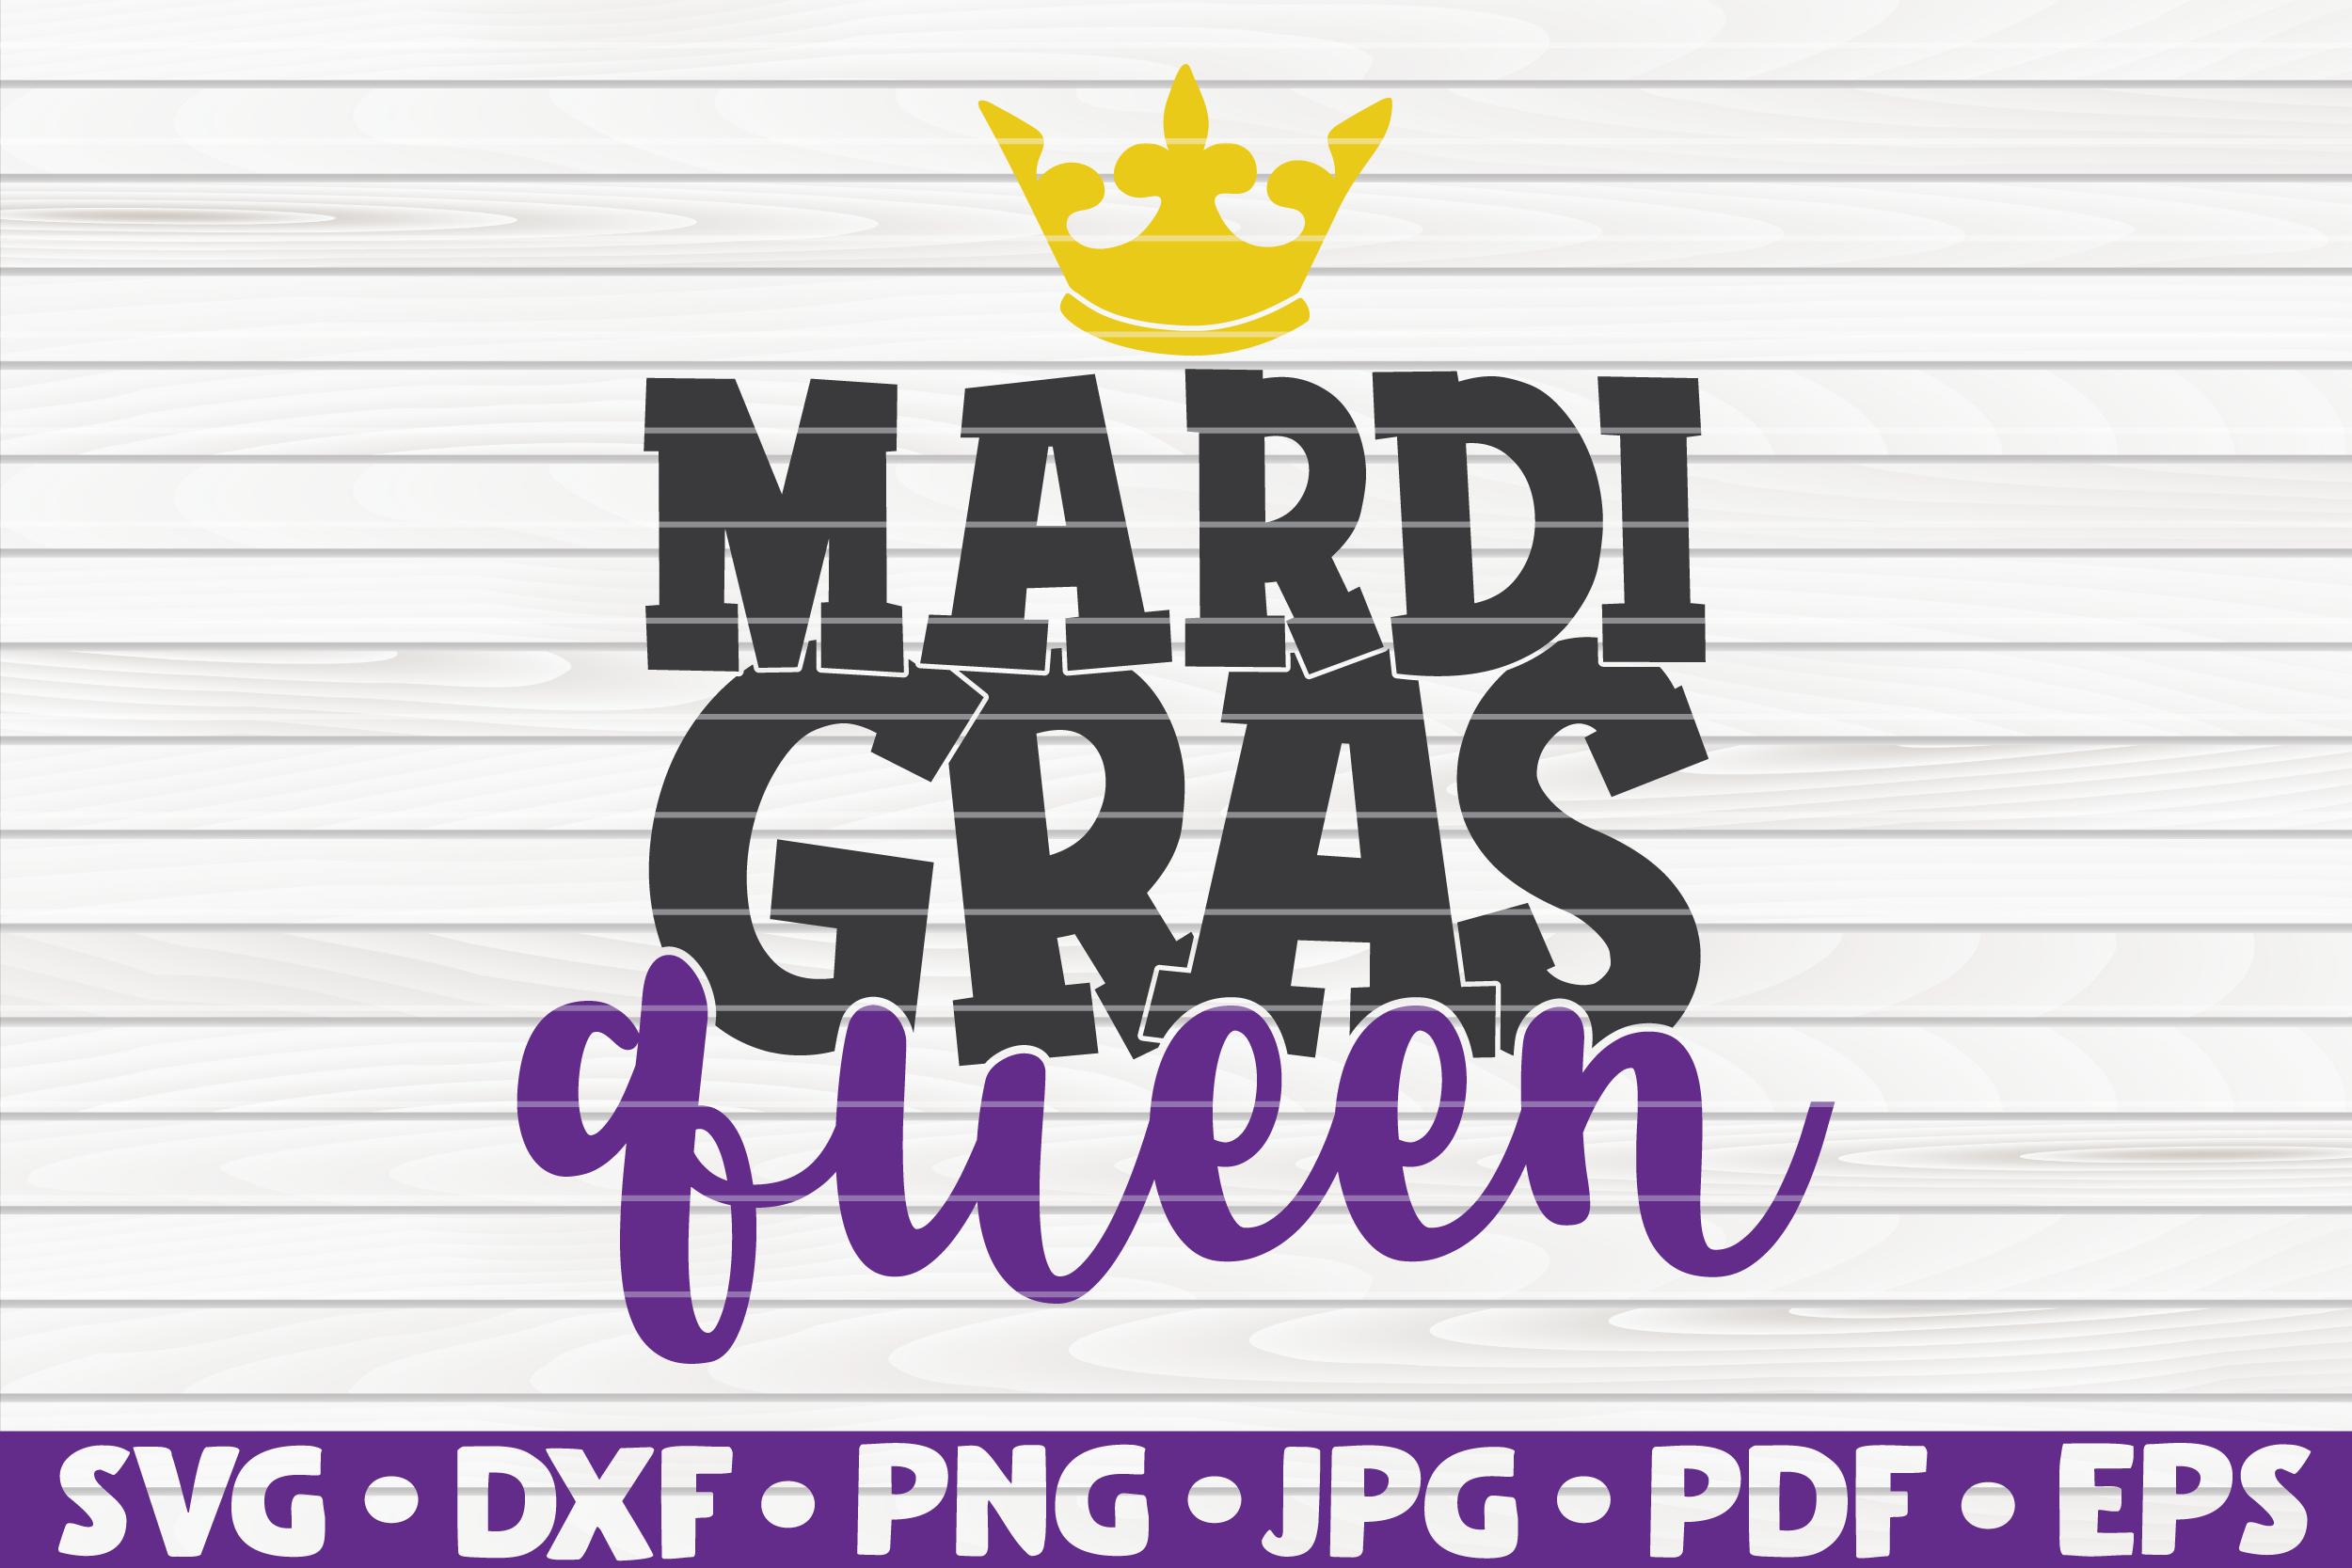 Mardi Gras Queen| Mardi Gras saying | SVG | cut file example image 1